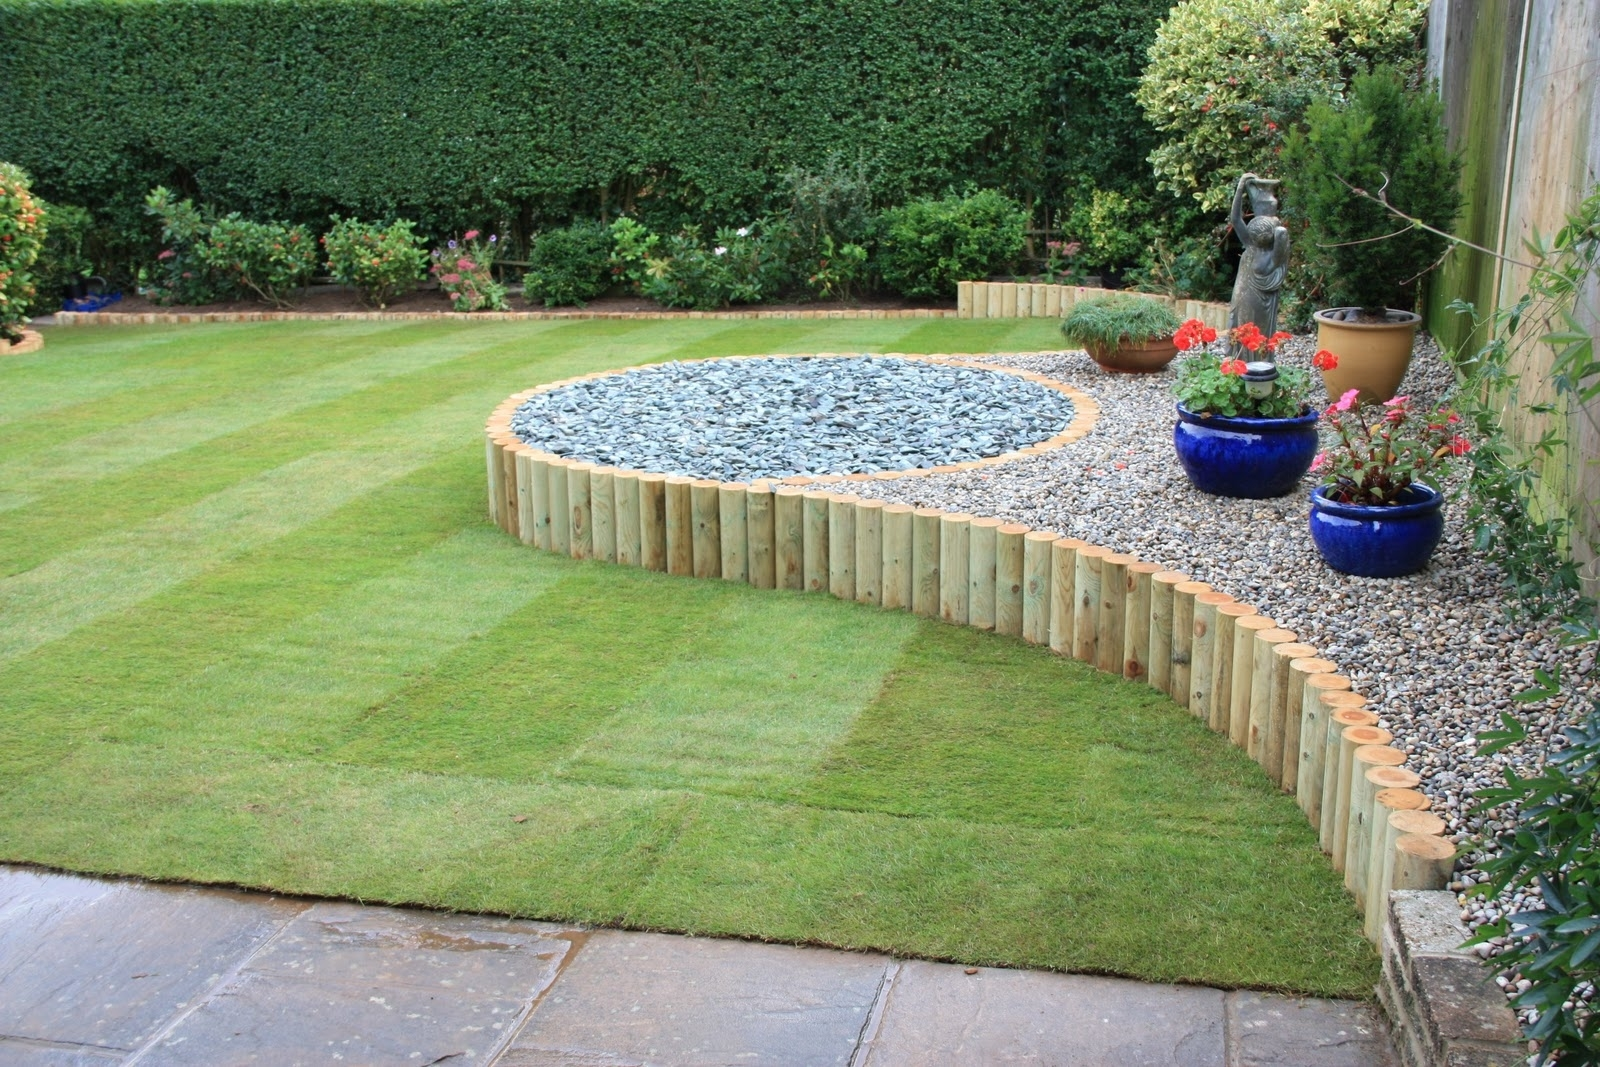 Garden Ideas : Simple Backyard Landscaping Ideas Best With Images Of intended for Simple Backyard Garden Plans